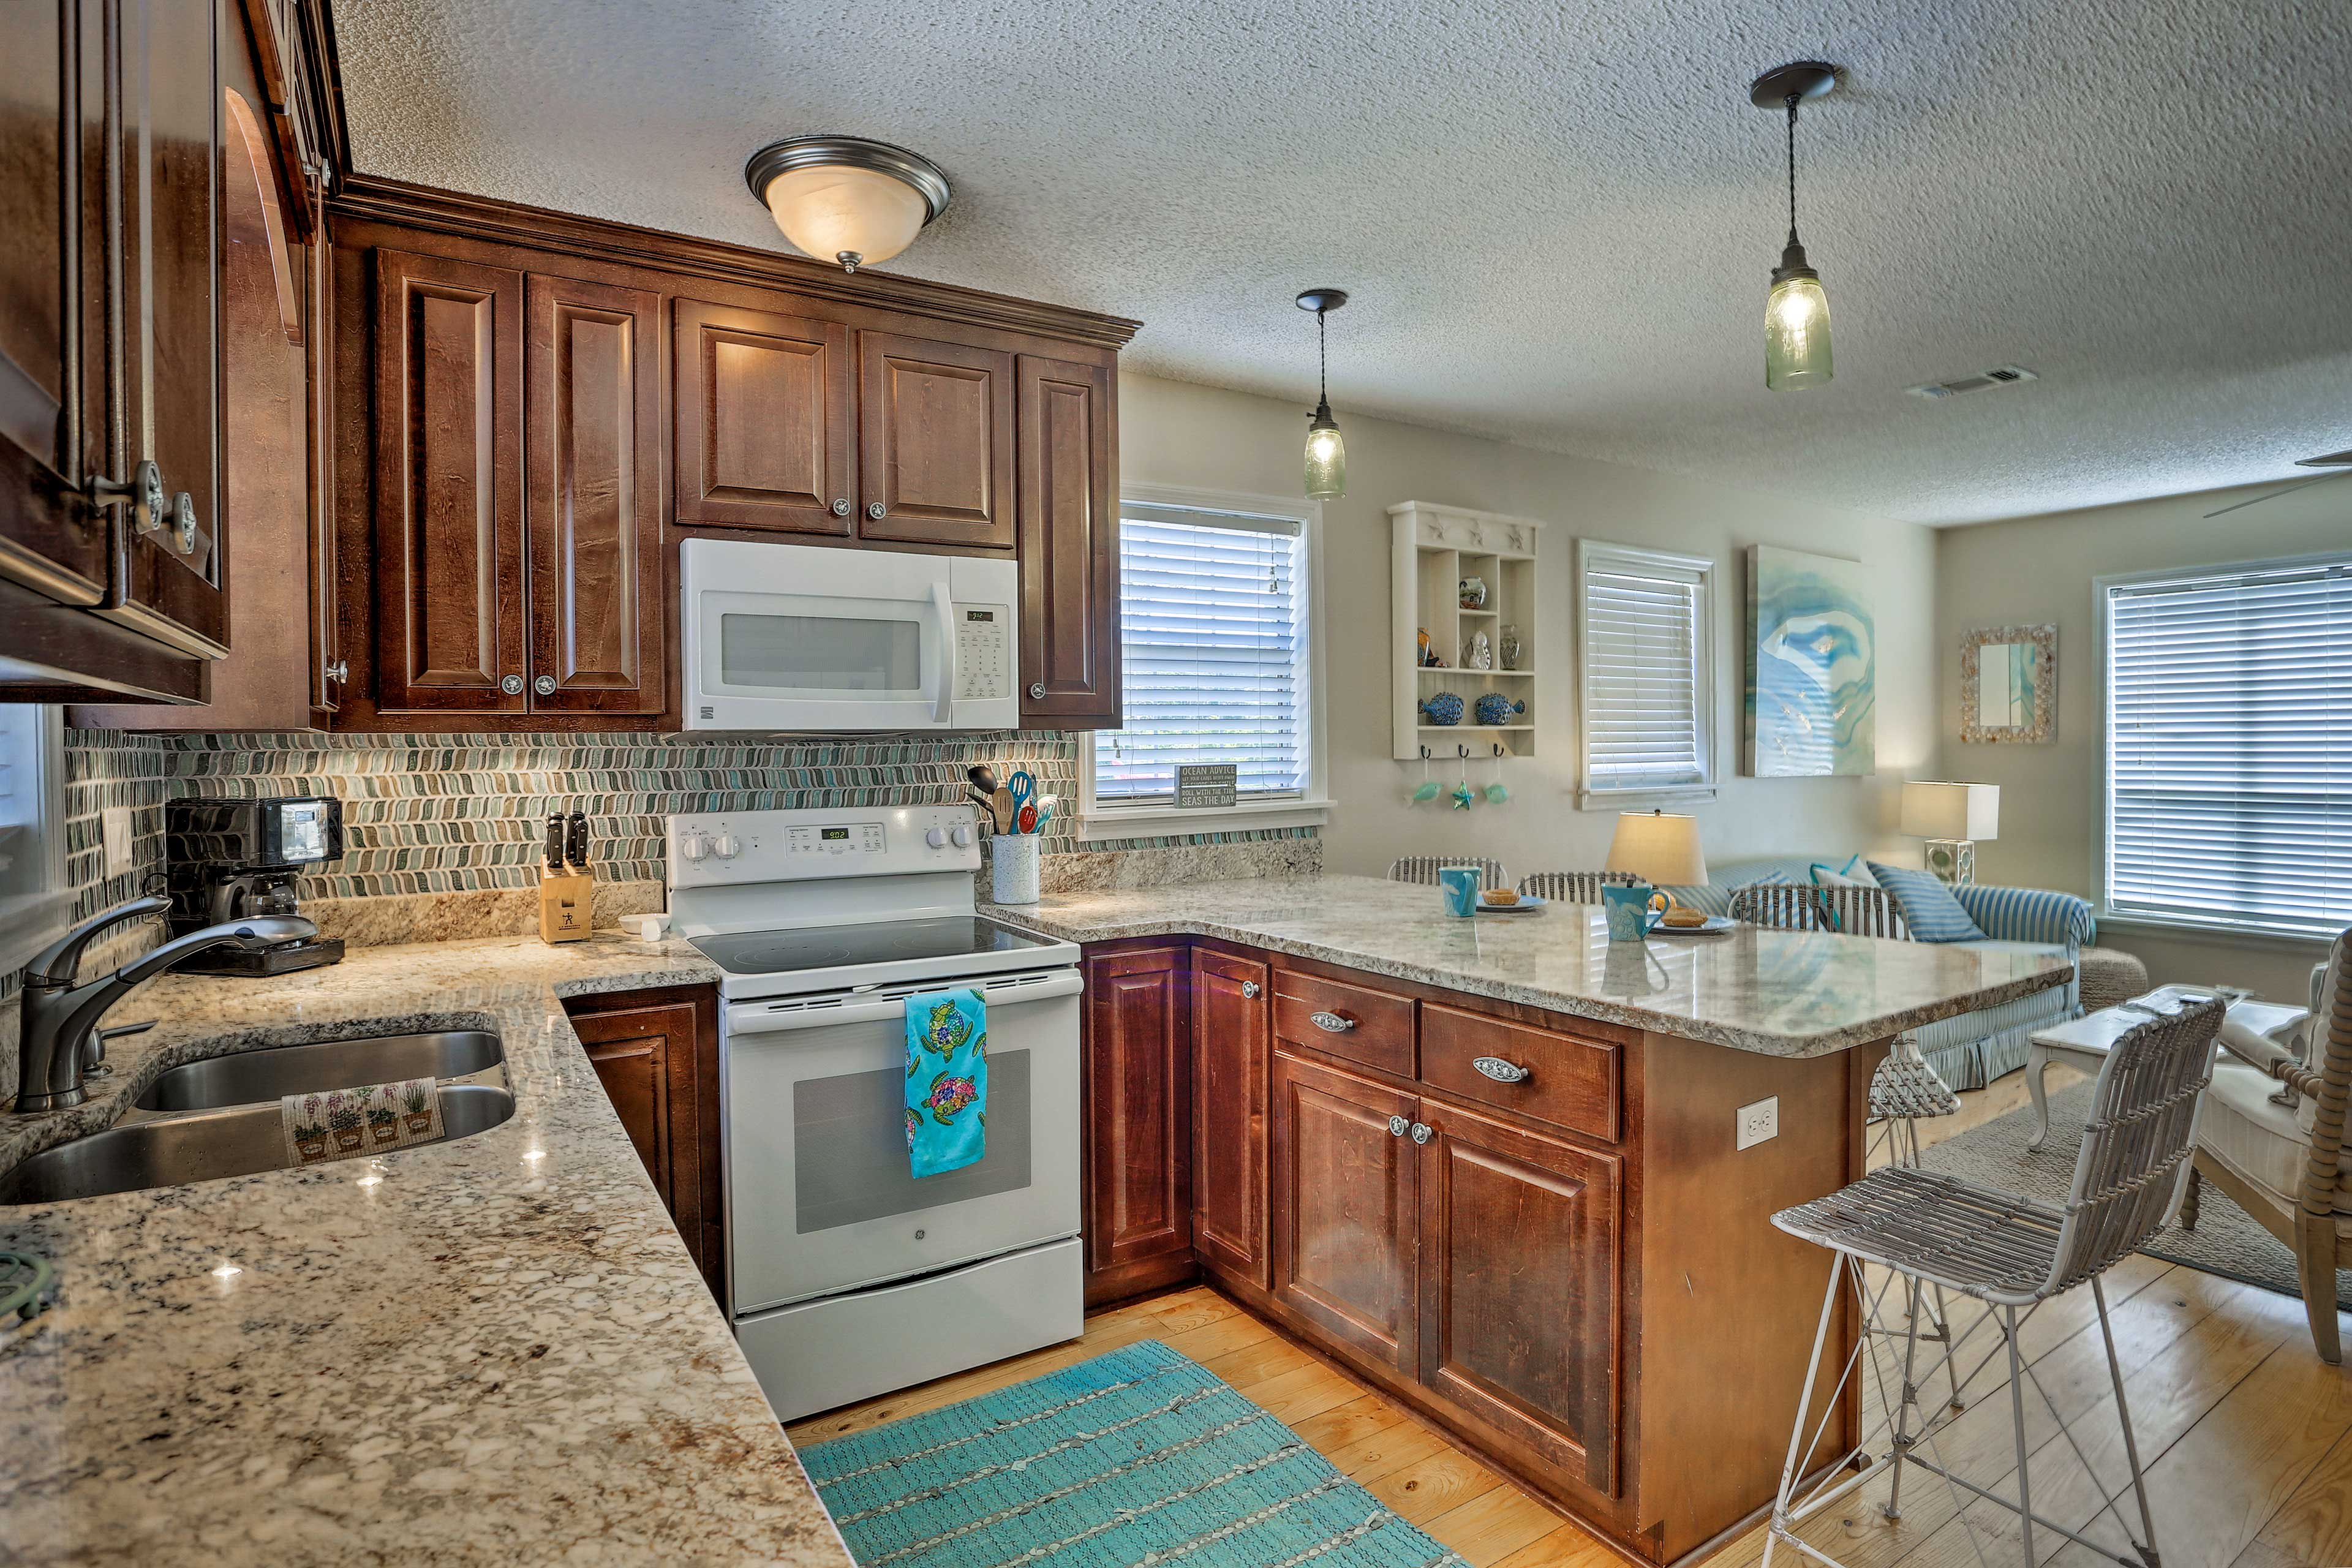 The fully equipped kitchen offers granite countertops.